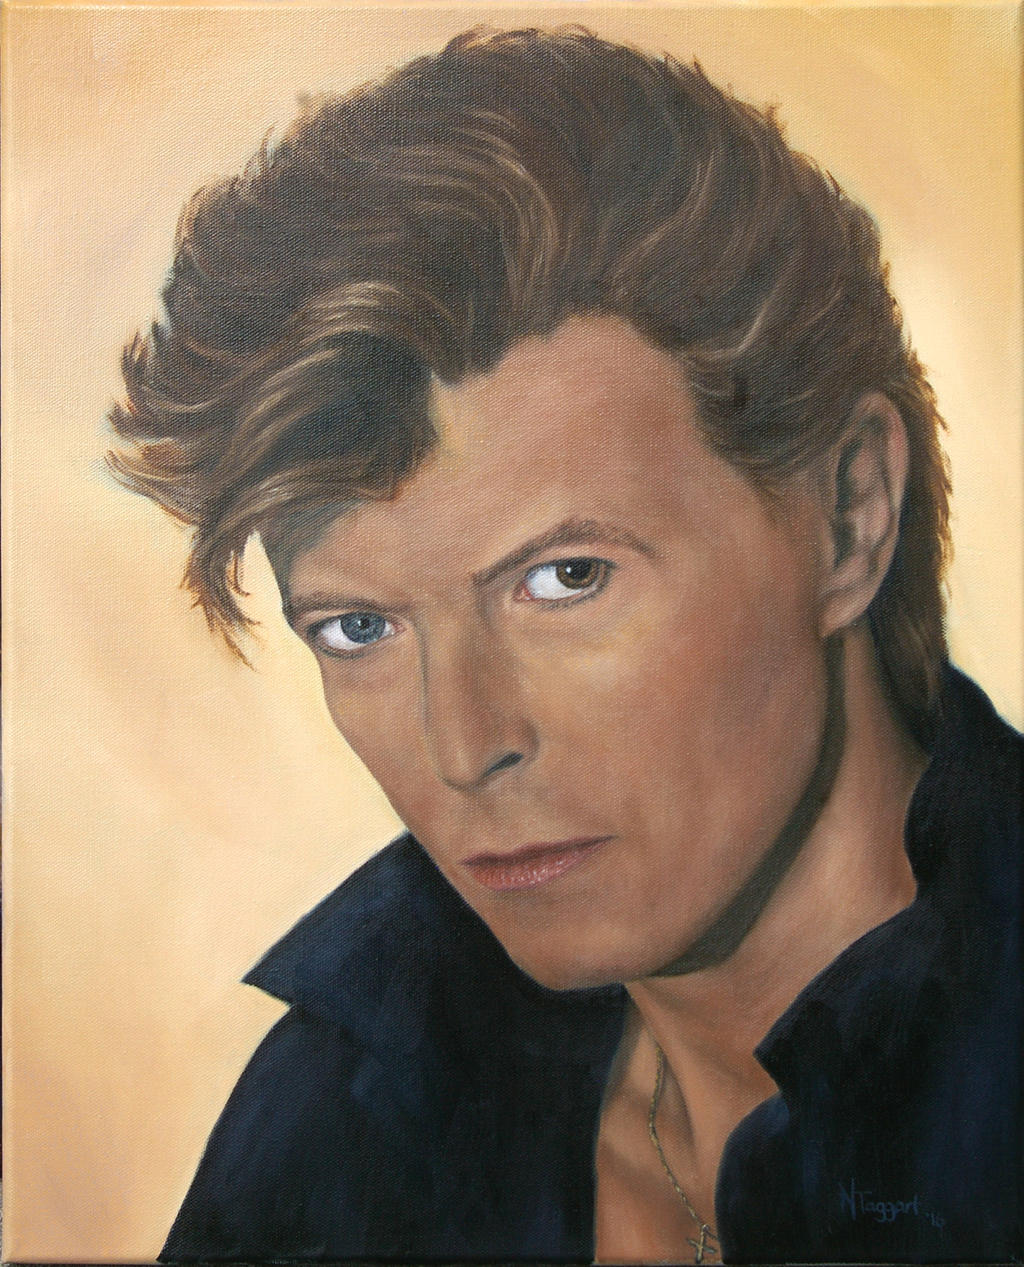 David Bowie by Coi-kins